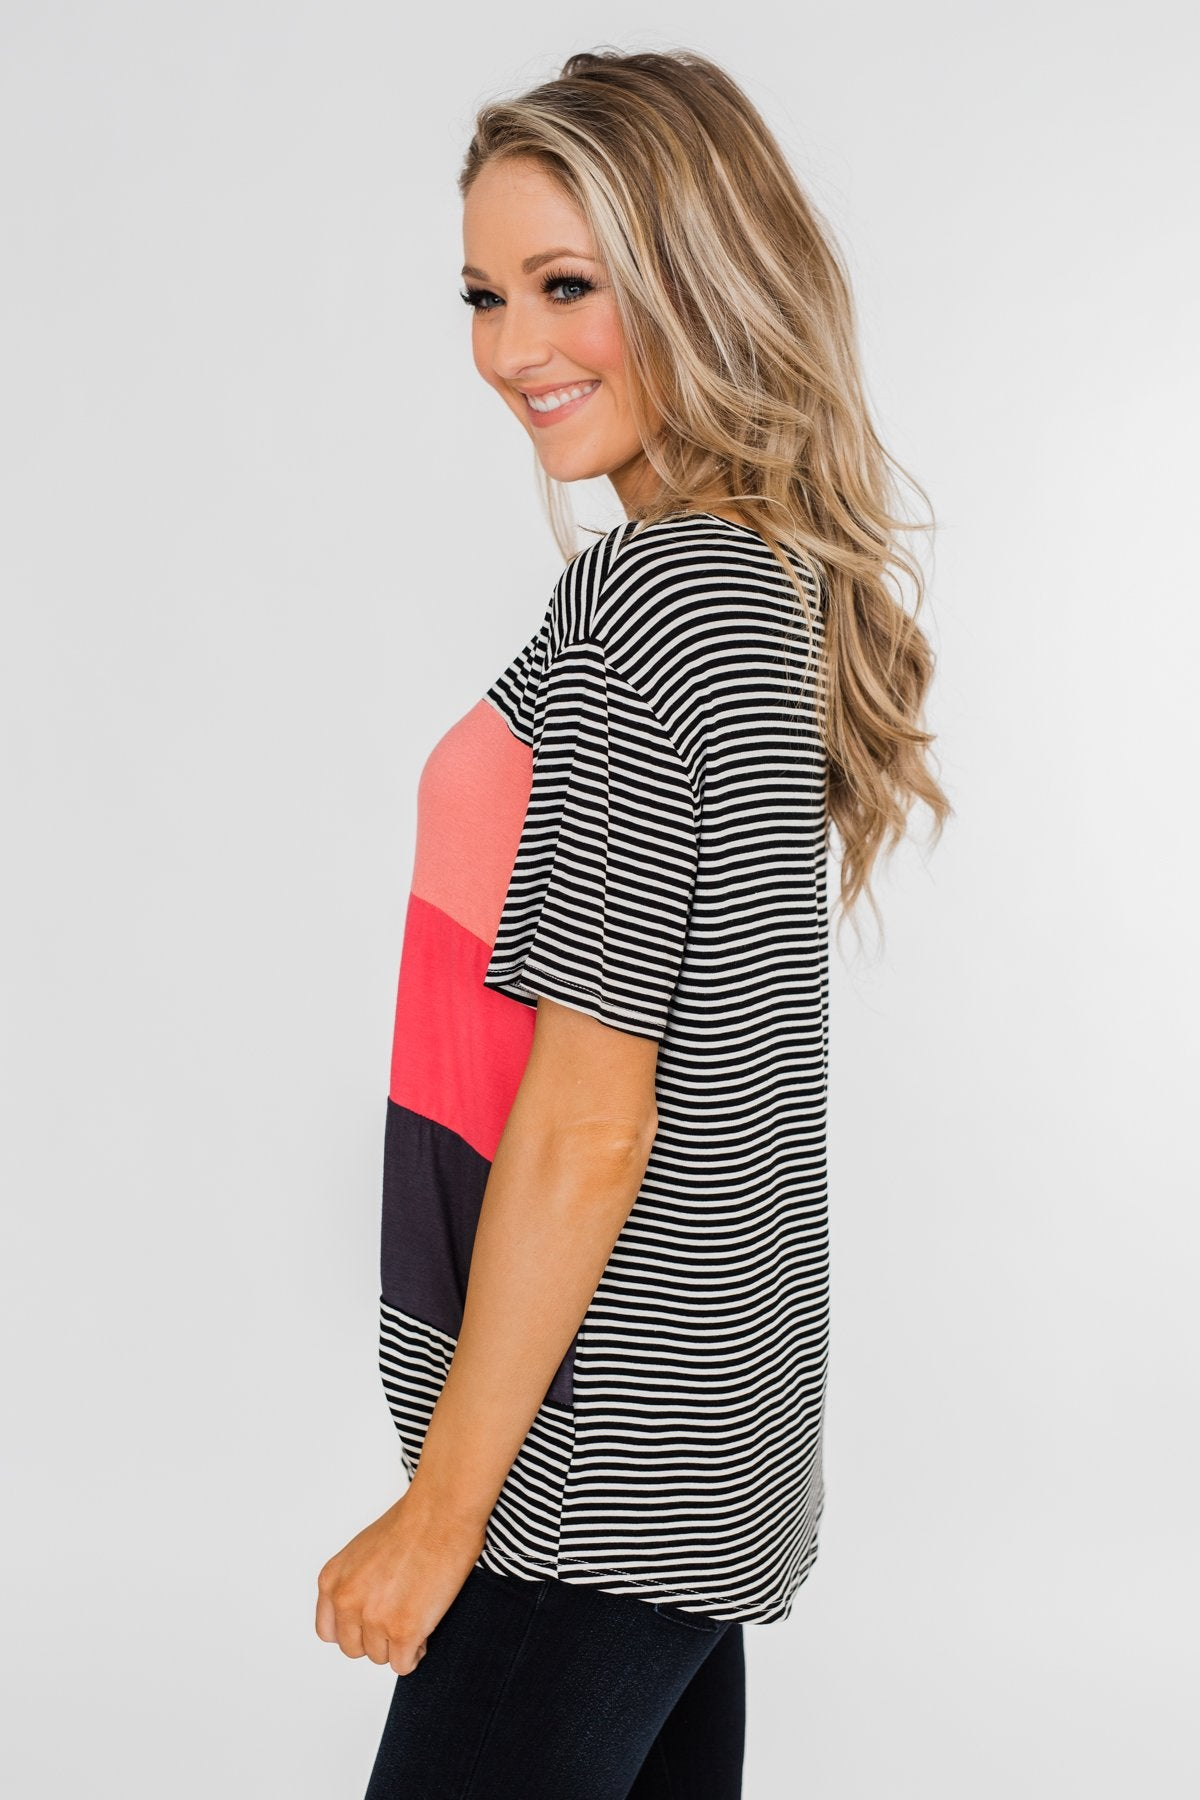 One Day At A Time Striped Color Block Top- Black, Pink, Navy